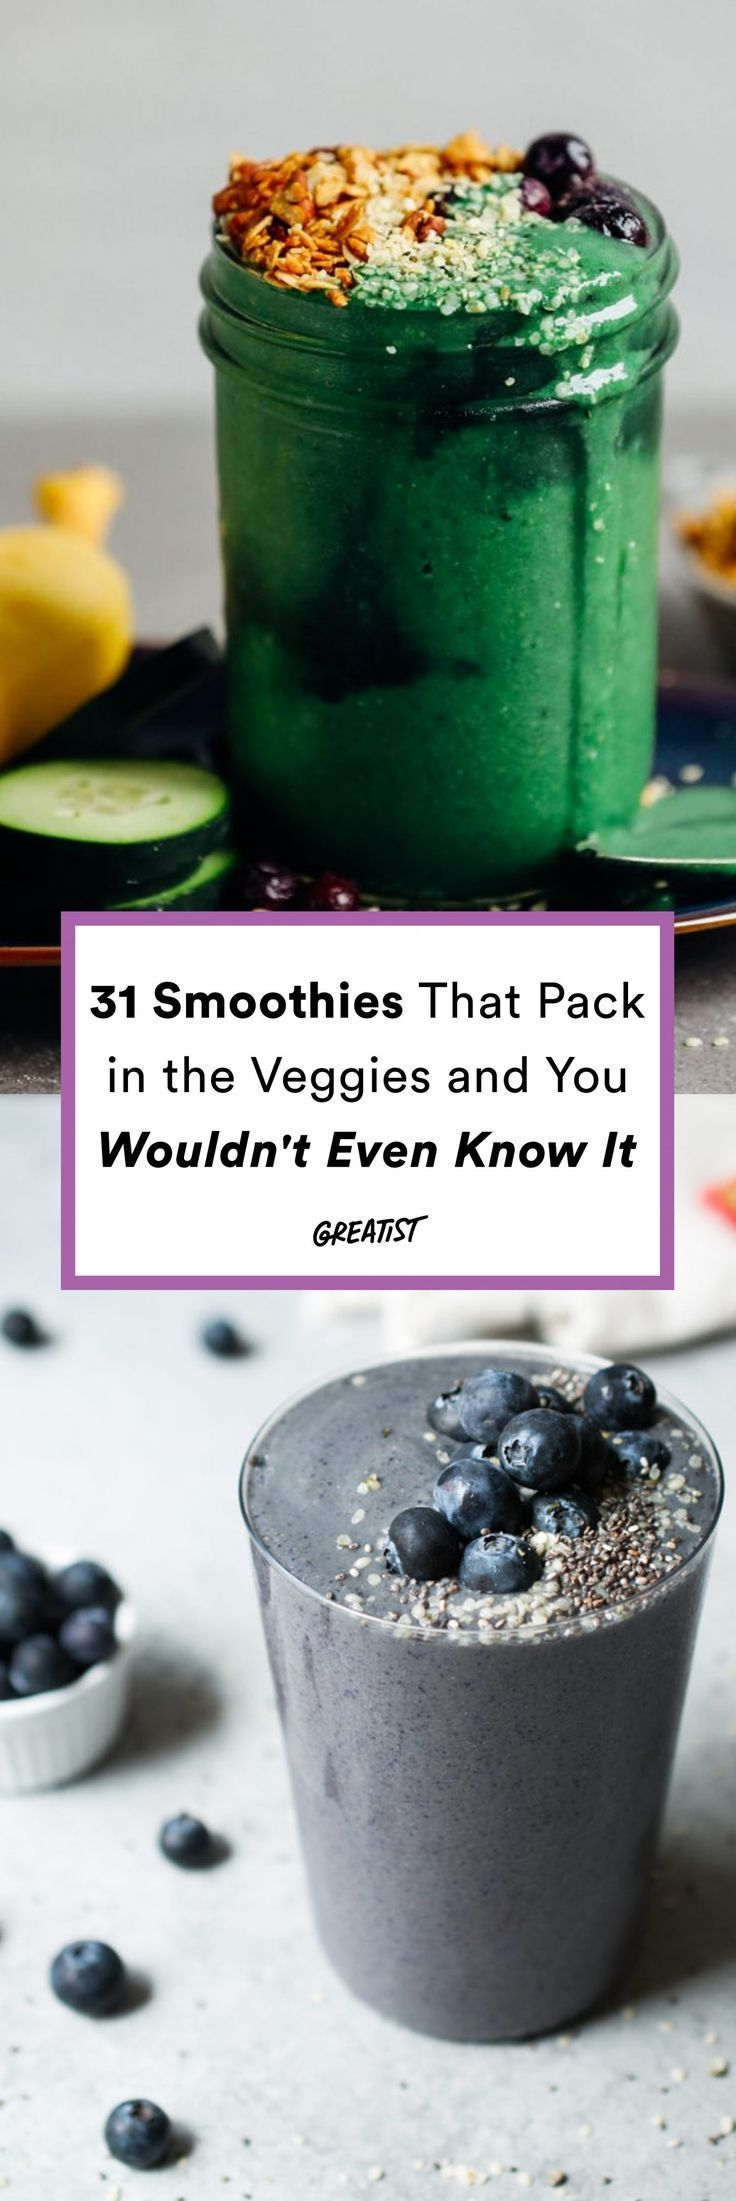 31 Smoothies That Pack in the Veggies (Not That You Can Tell)